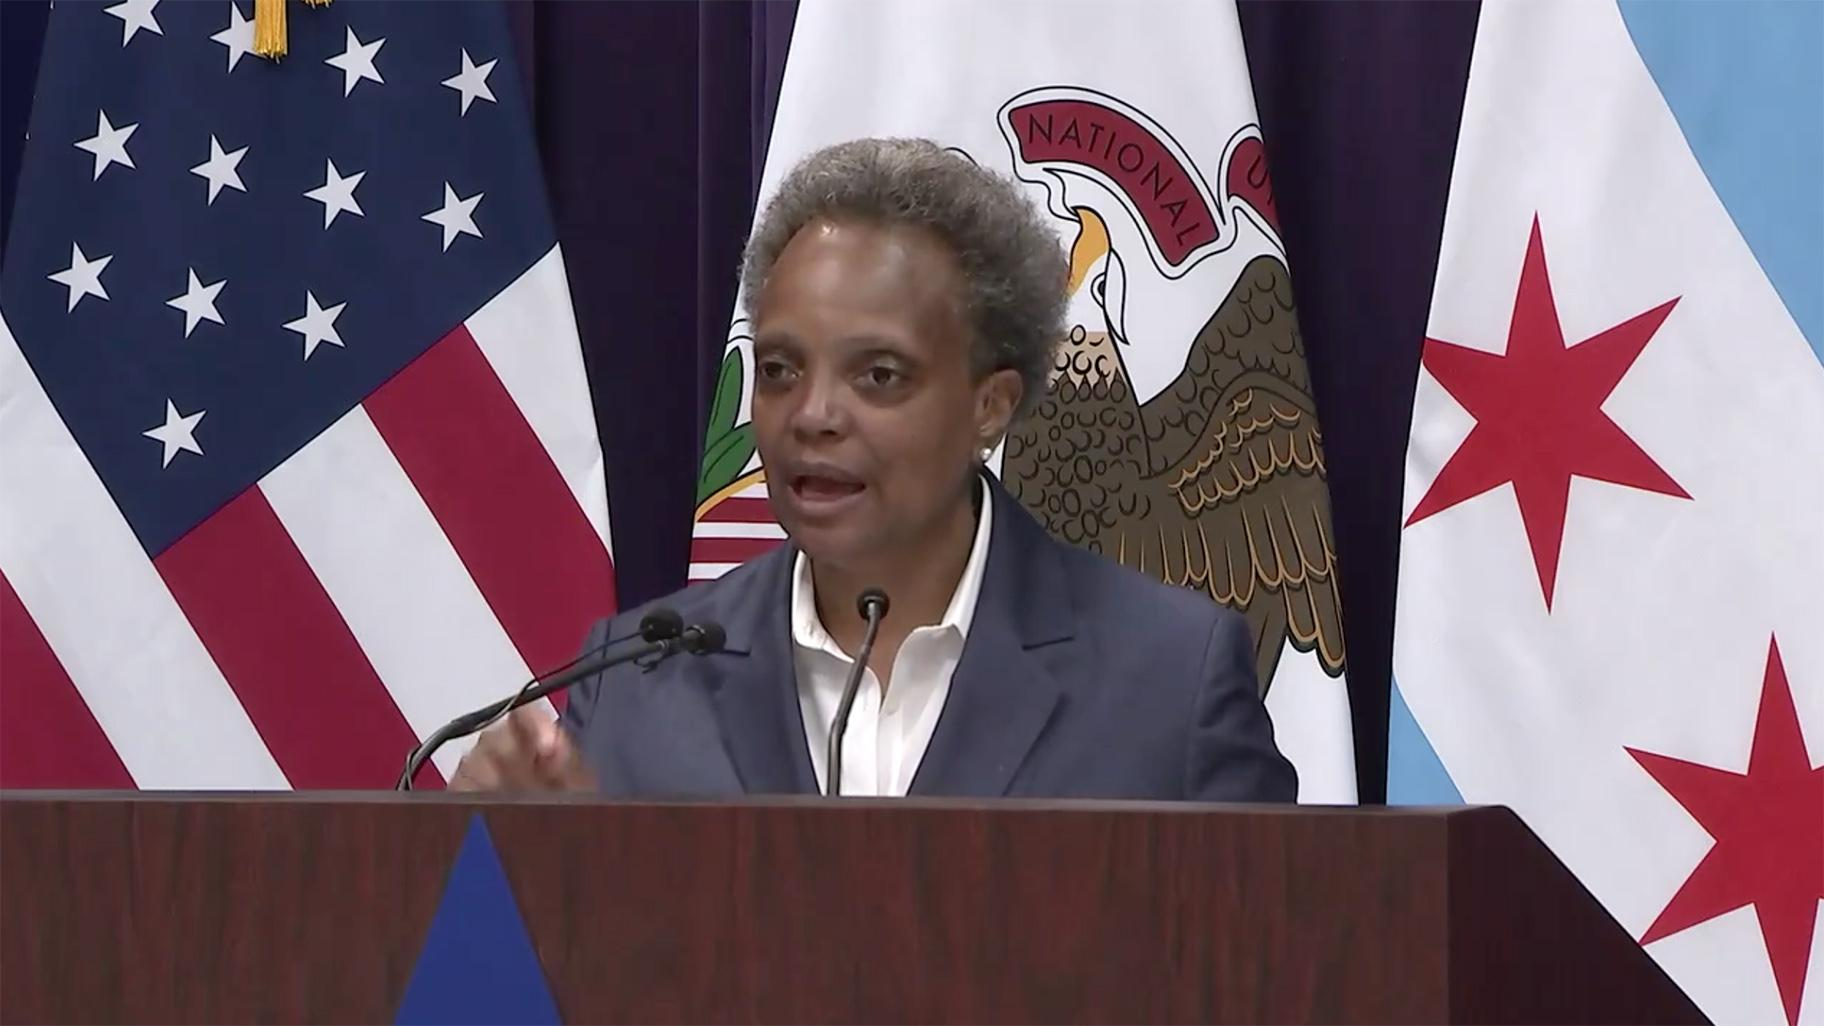 Mayor Lori Lightfoot speaks at a press conference Monday, Aug. 10, 2020. (WTTW News via @MayorLightfoot)